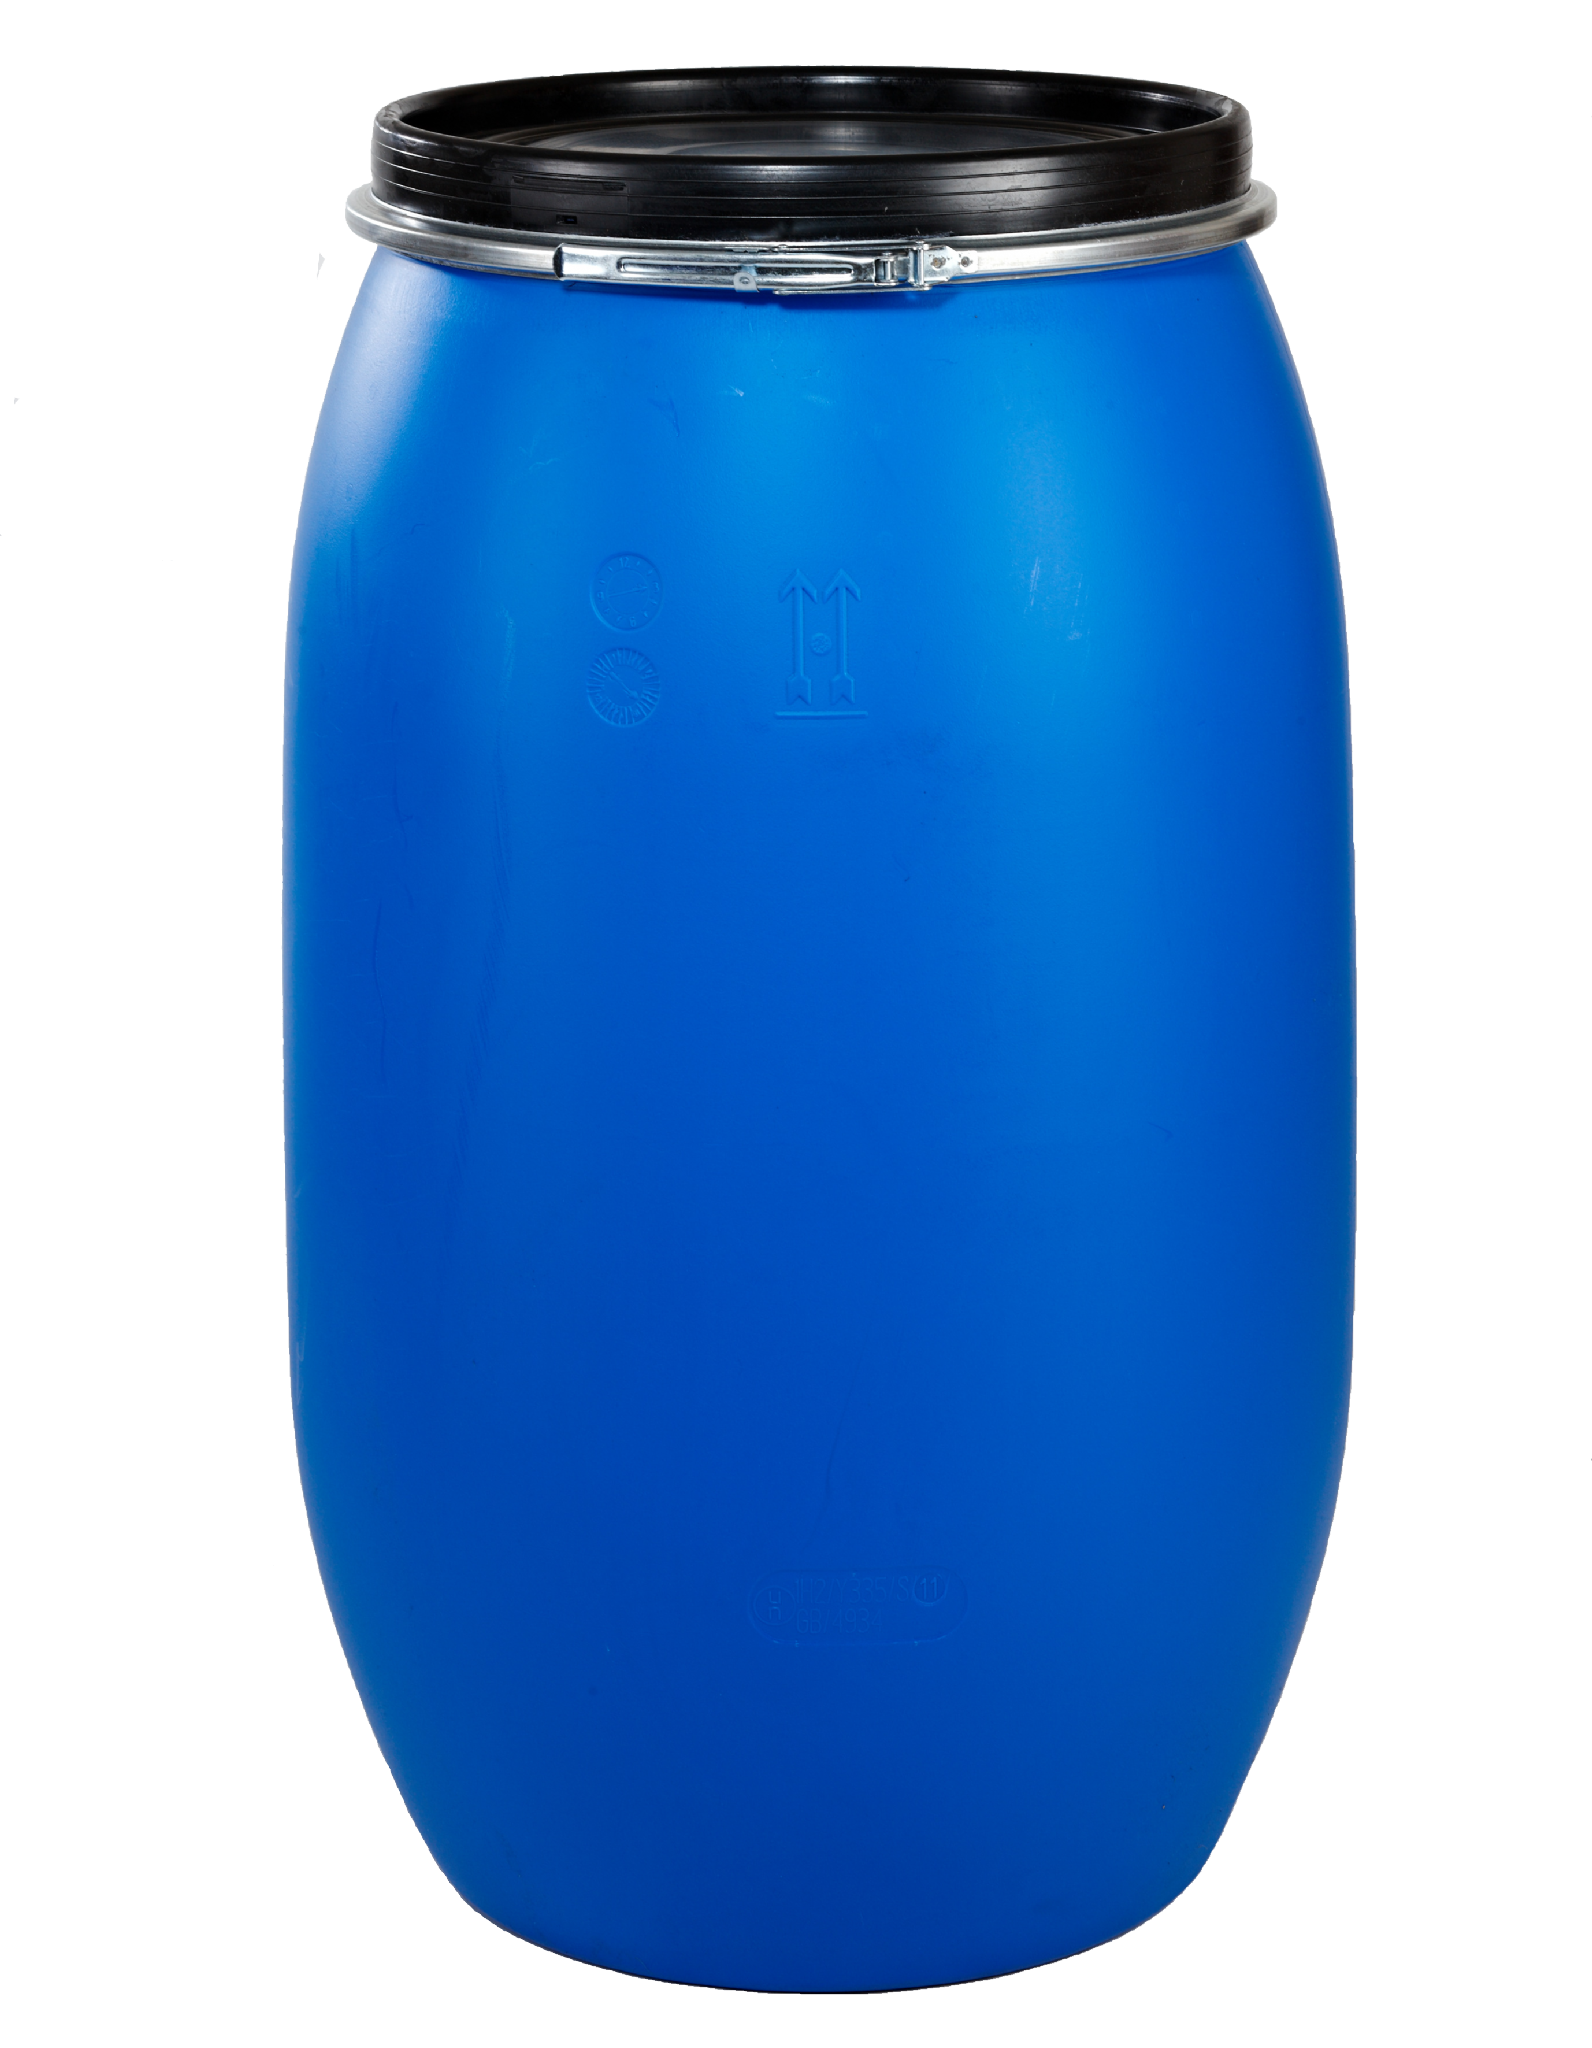 Barrel clipart water drum. Png free download fourjay